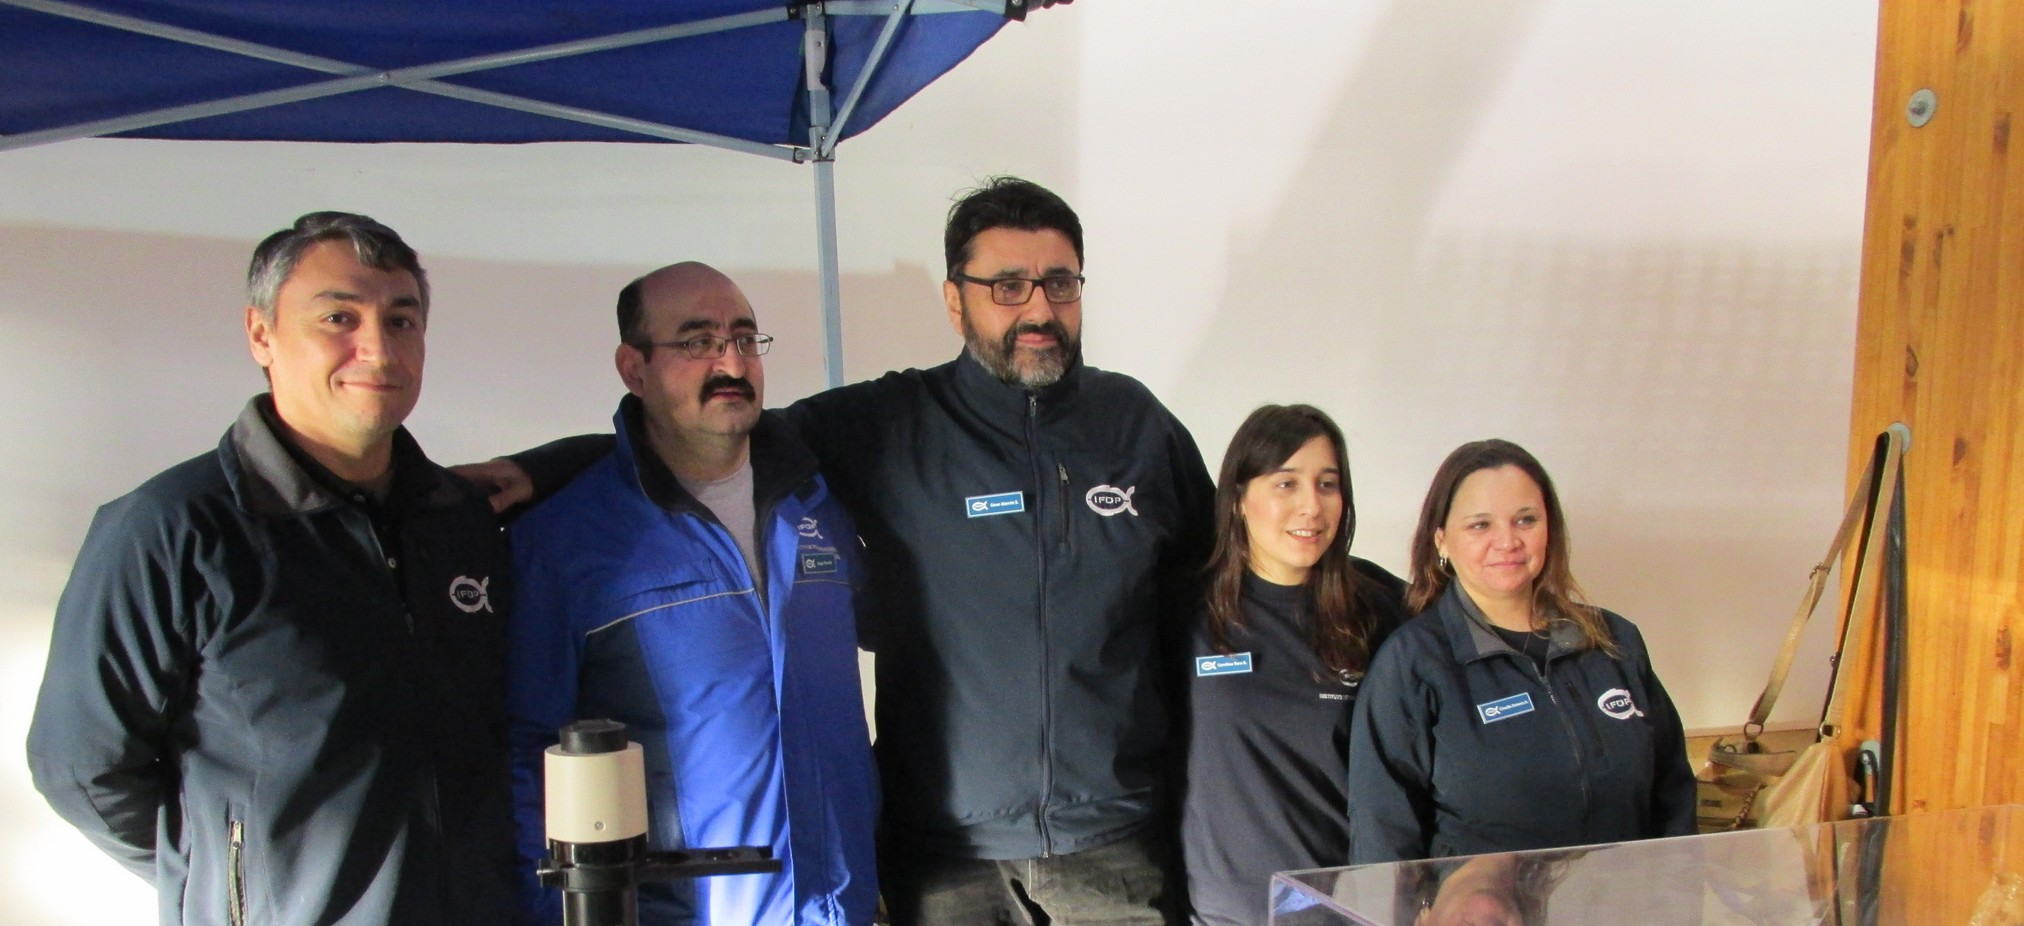 The big success of the Interactive Scientific Show of IFOP at Punta Arenas